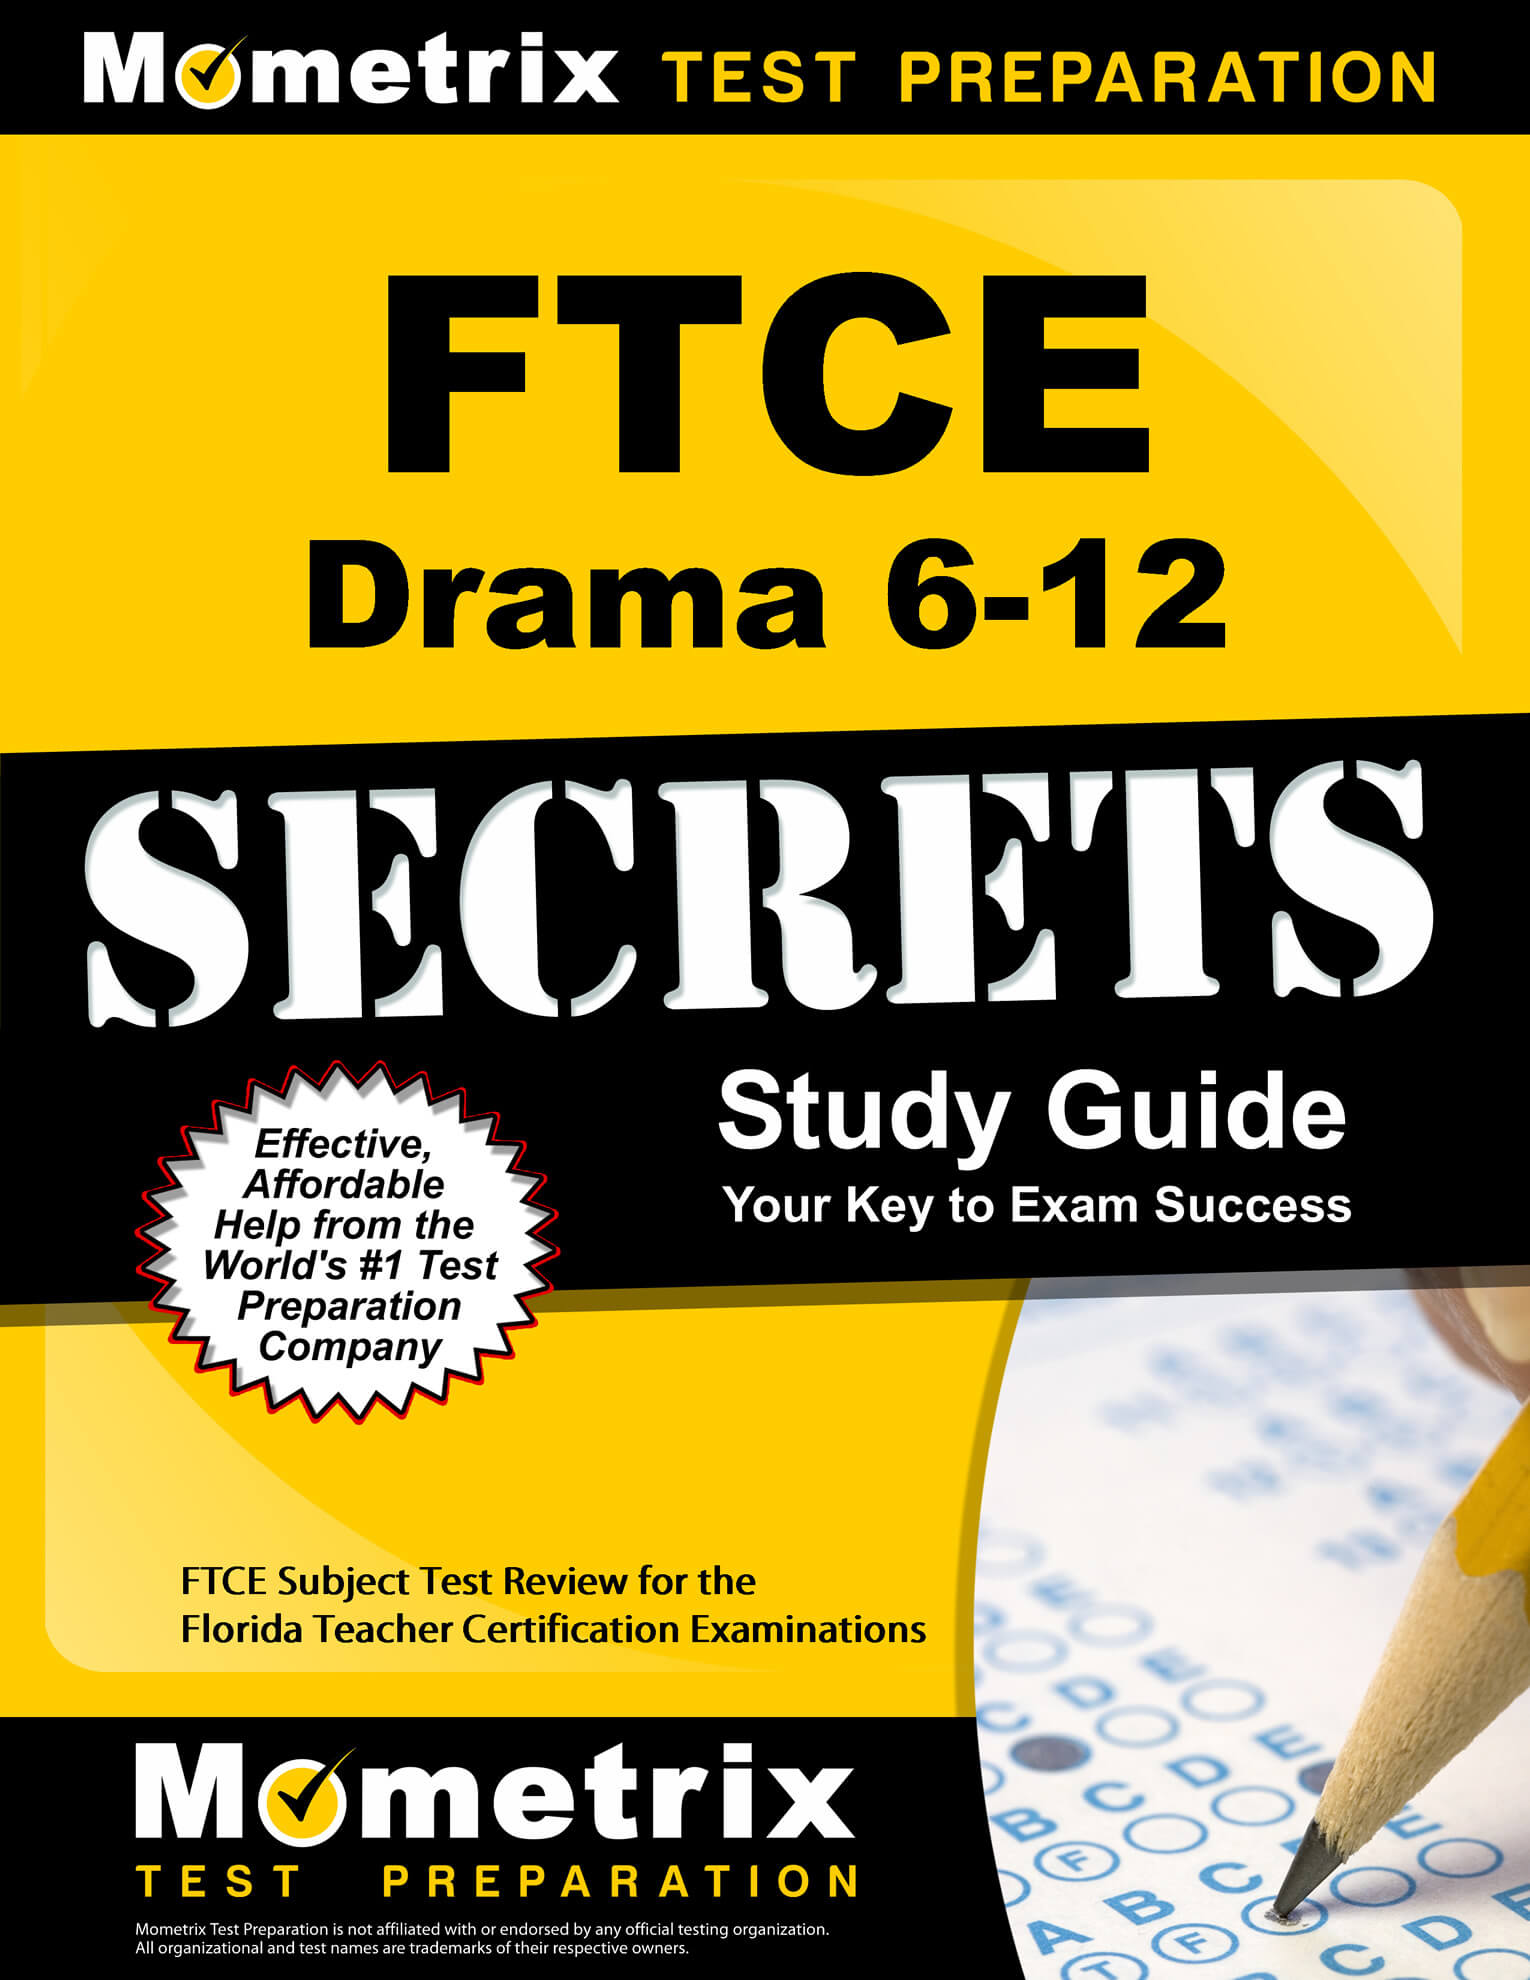 FTCE Drama 6-12 Study Guide